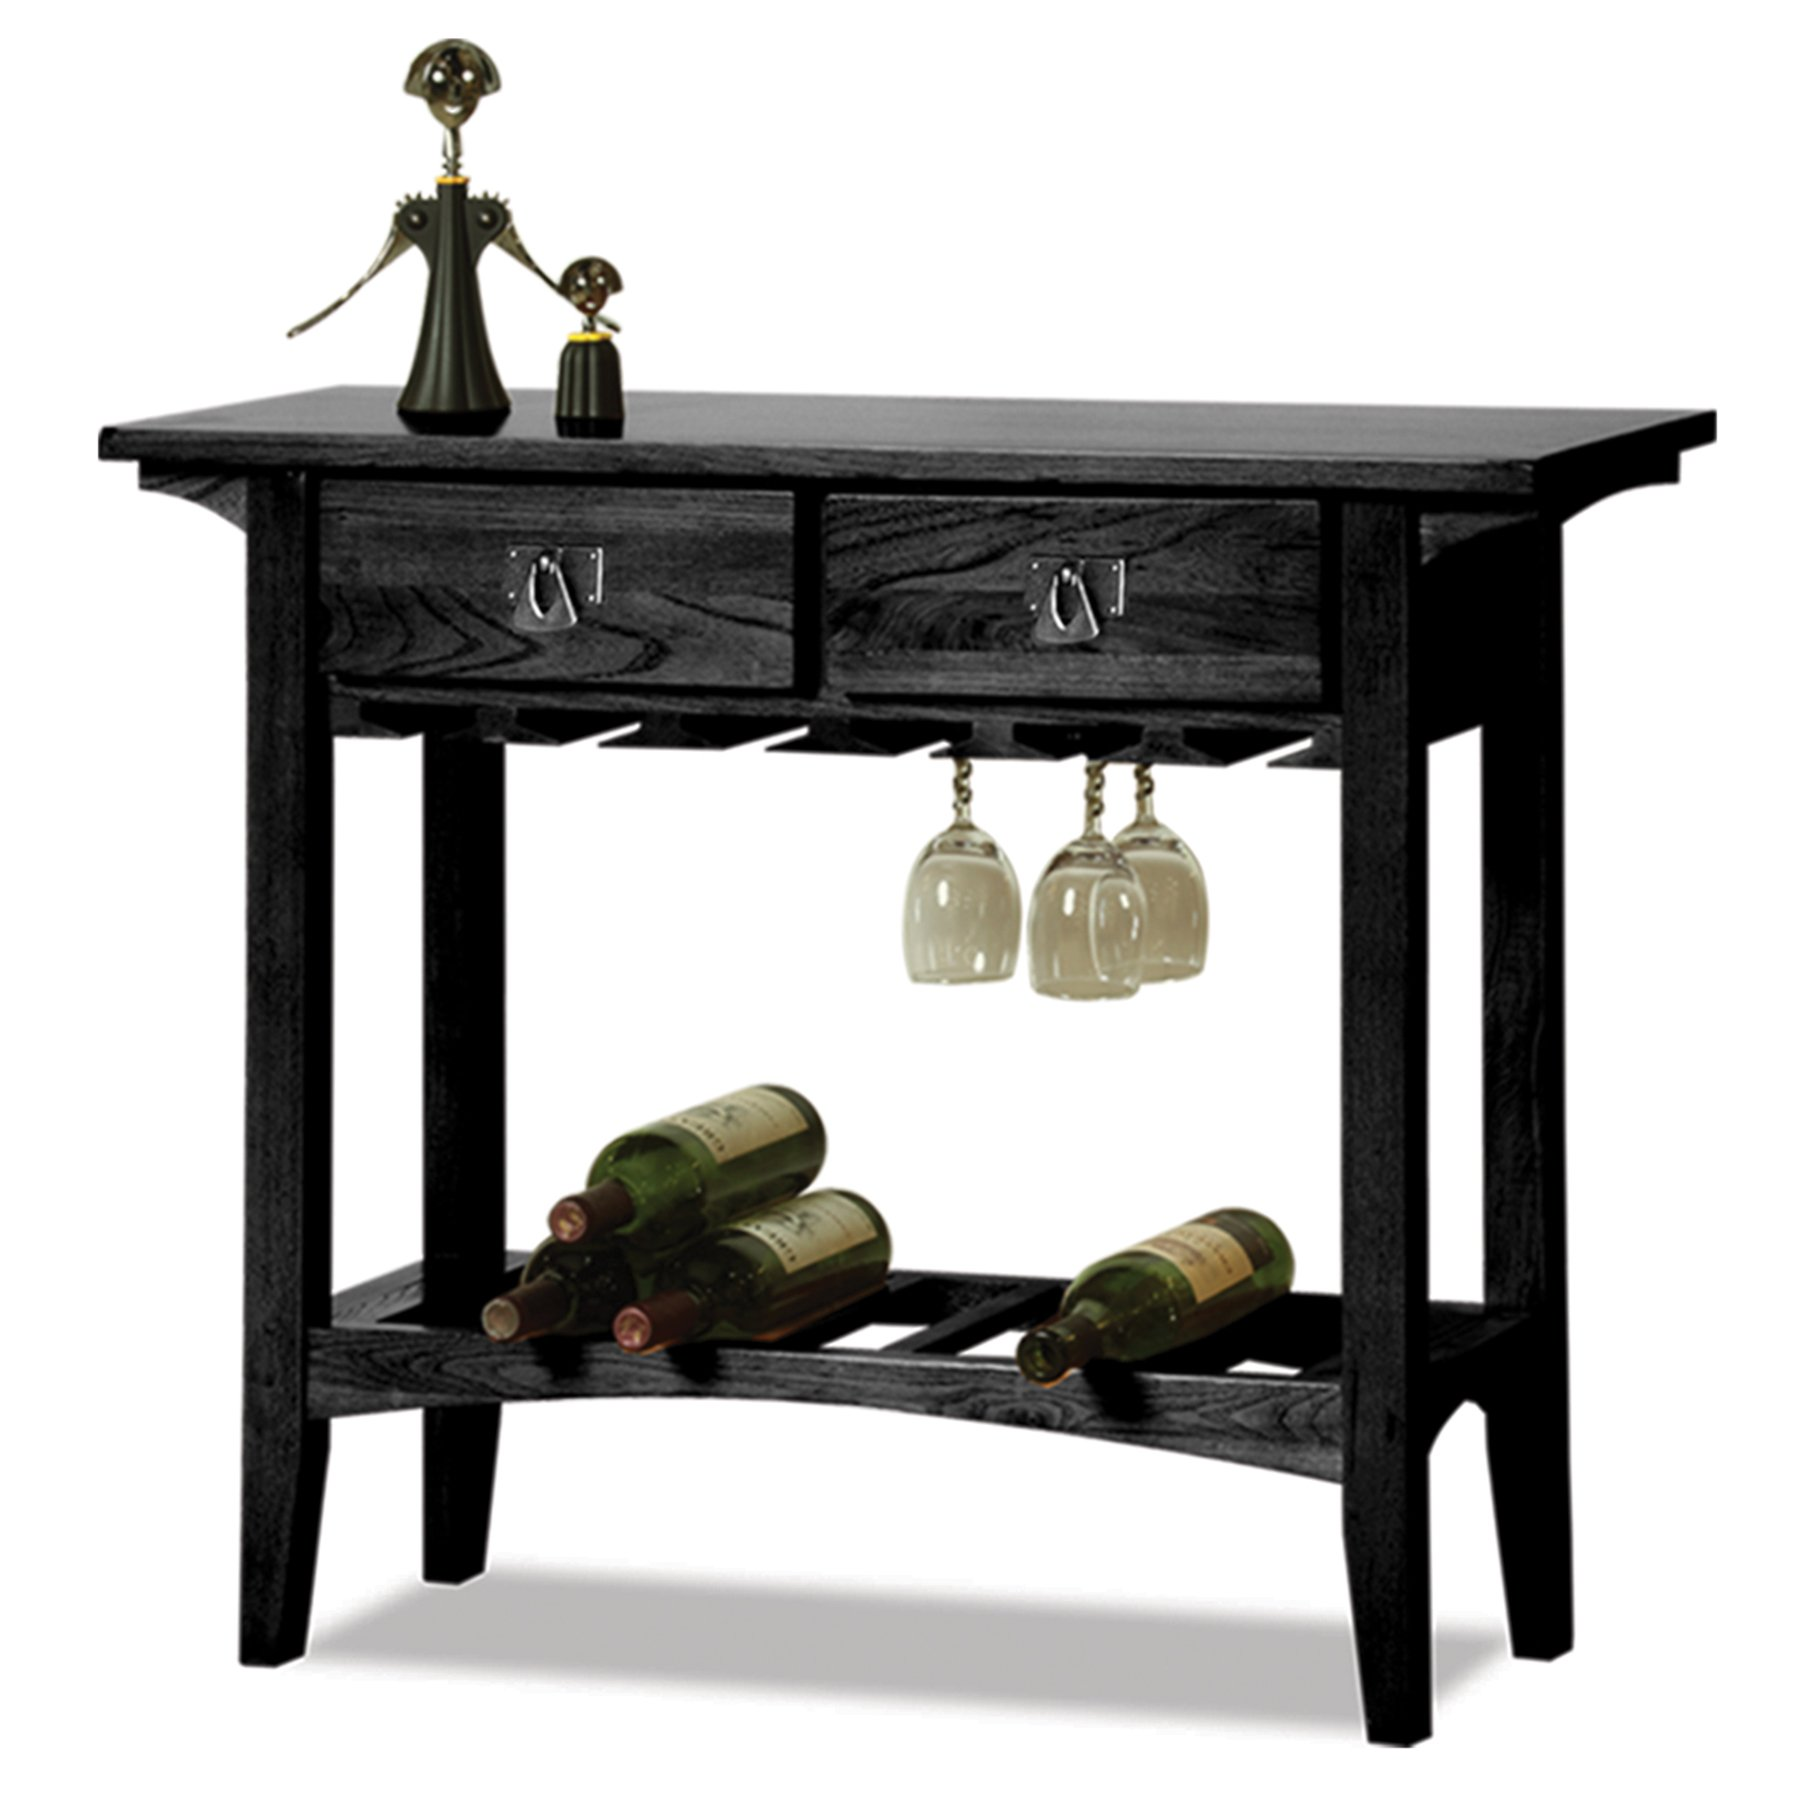 Leick Mission Wine Table with Storage Drawers, Slate Black Finish by Leick Furniture